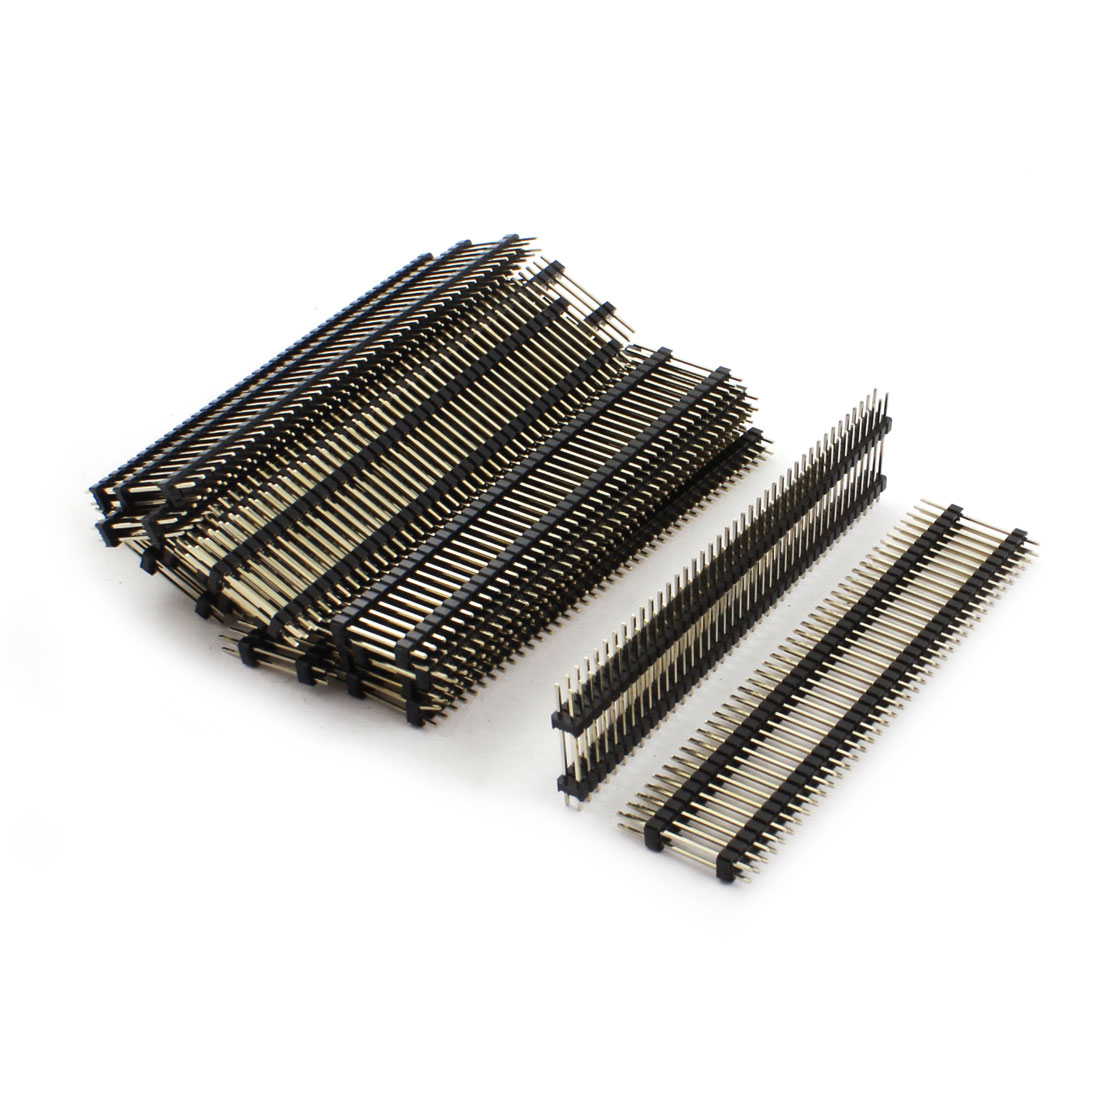 20Pcs 2.54mm Pitch Double Row 2x40 80Pin Male Straight Pin Header Connector Strip 25mm Length